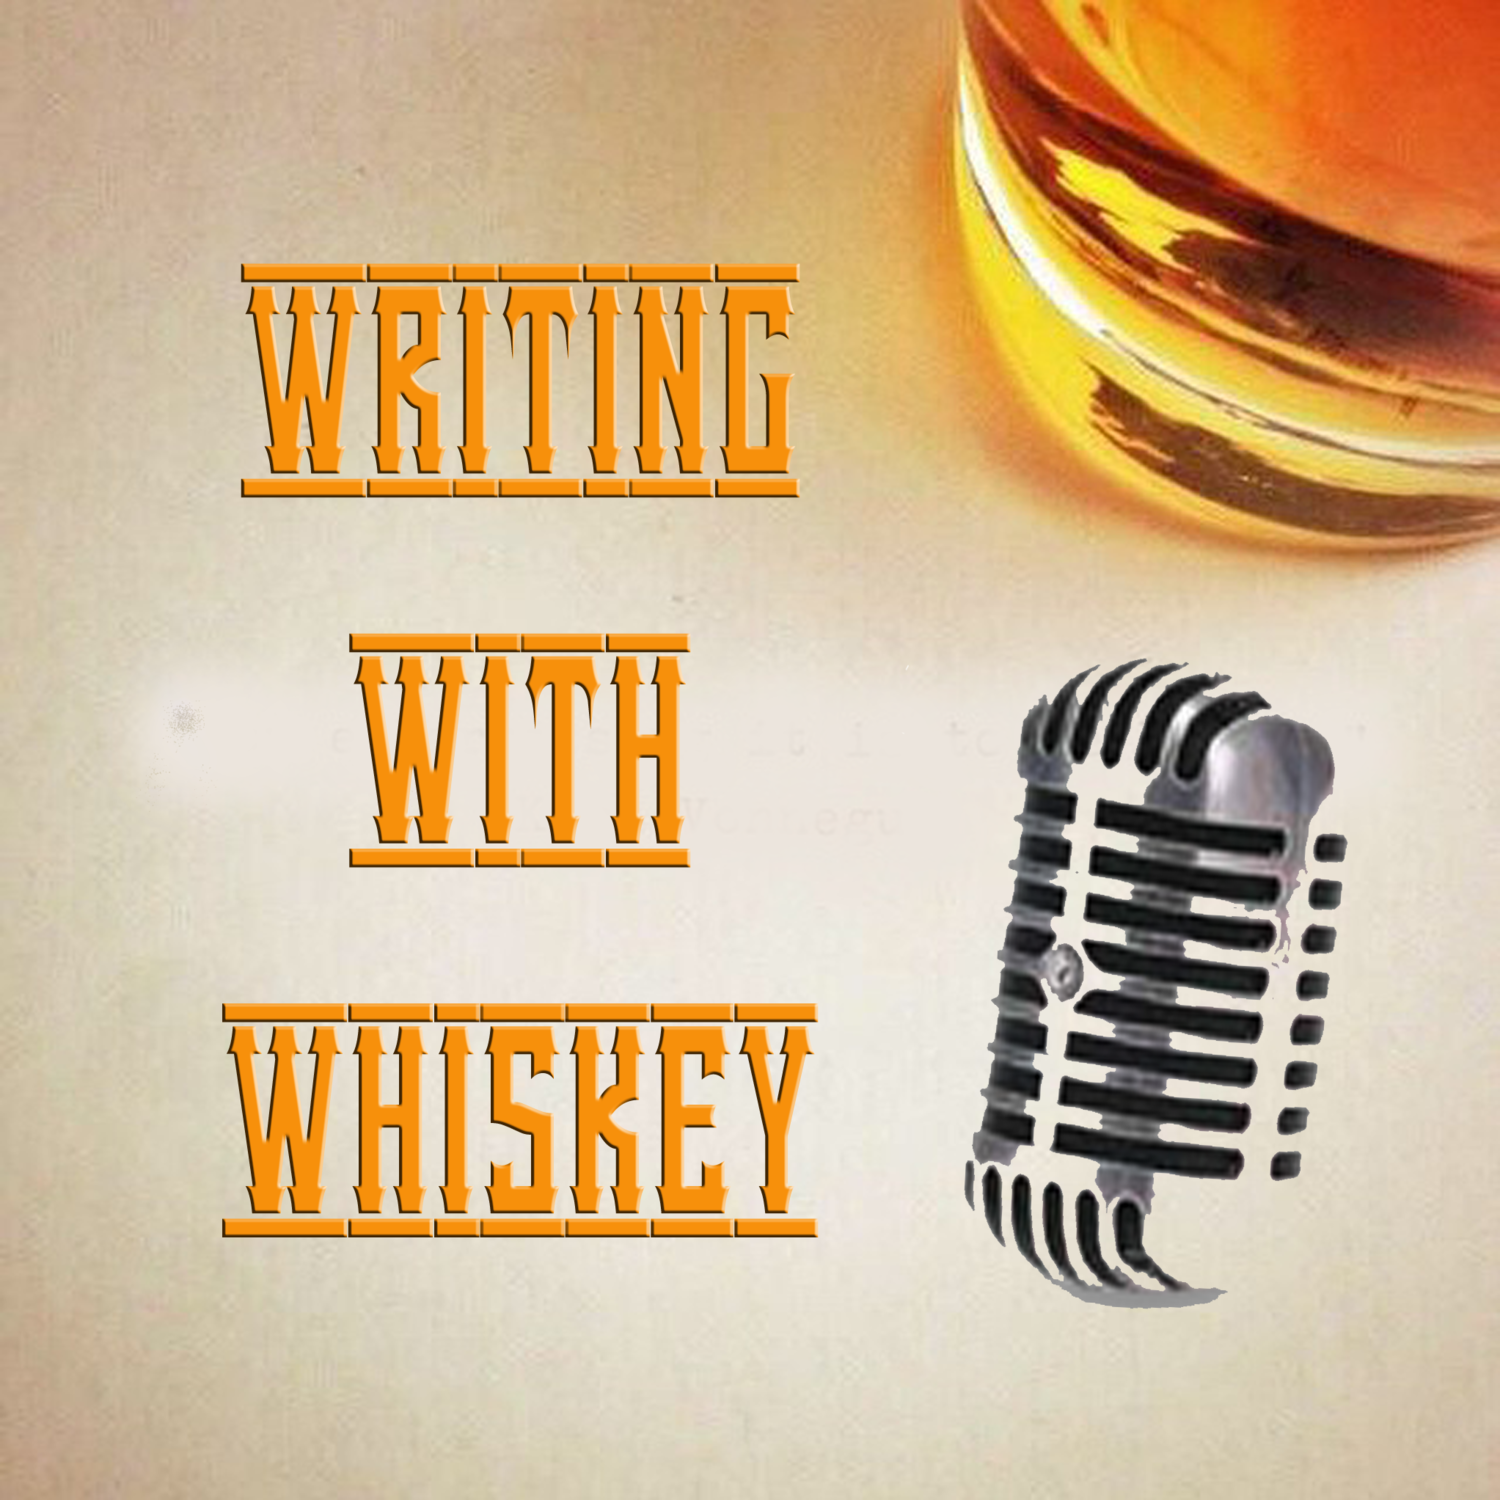 Writing with Whiskey - Writing with Whiskey